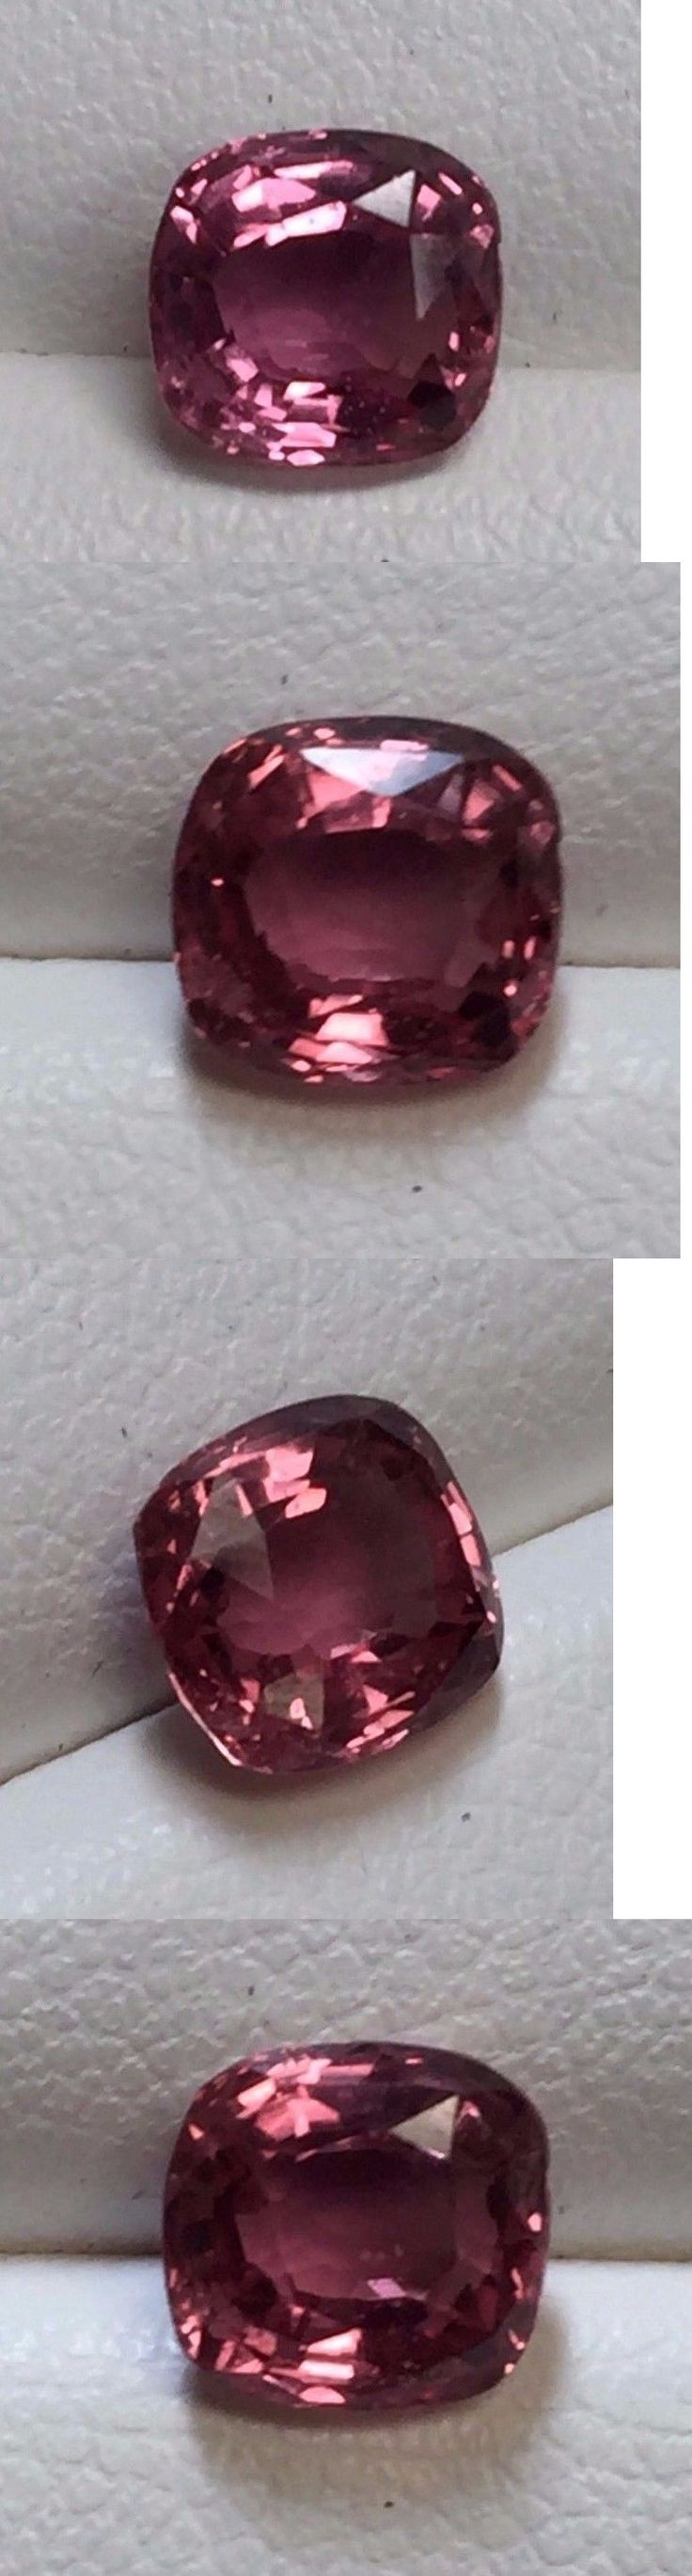 Natural Sapphires 4644: 1.58Ct Beautiful Padparadscha No Heat Agl Certified Natural Loose Sapphire -> BUY IT NOW ONLY: $1895 on eBay!